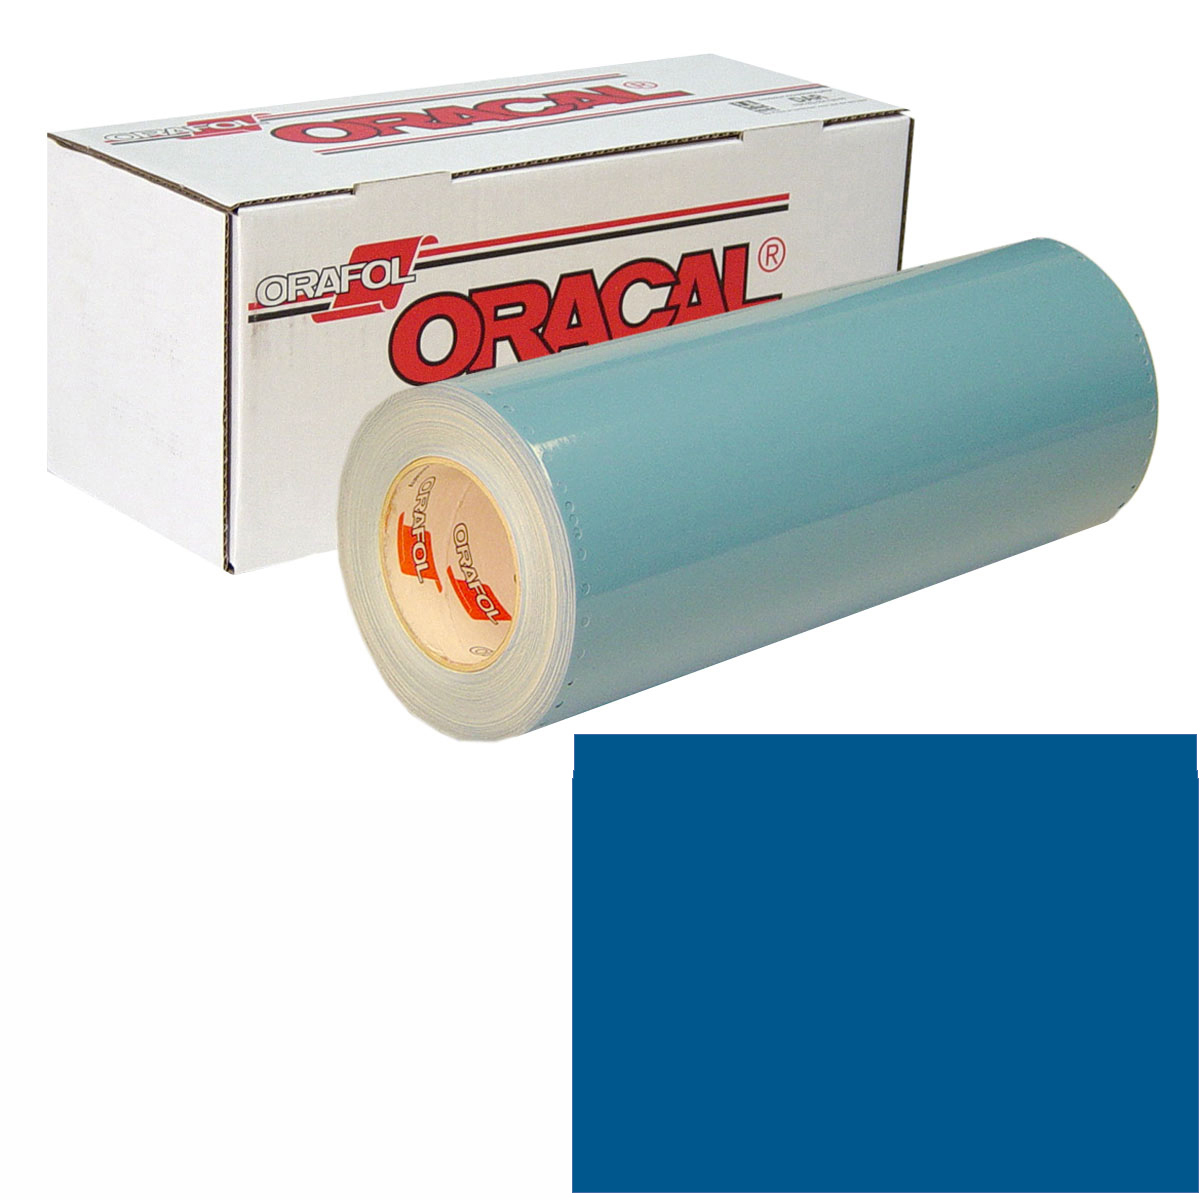 ORACAL 751 30In X 50Yd 051 Gentian Blue